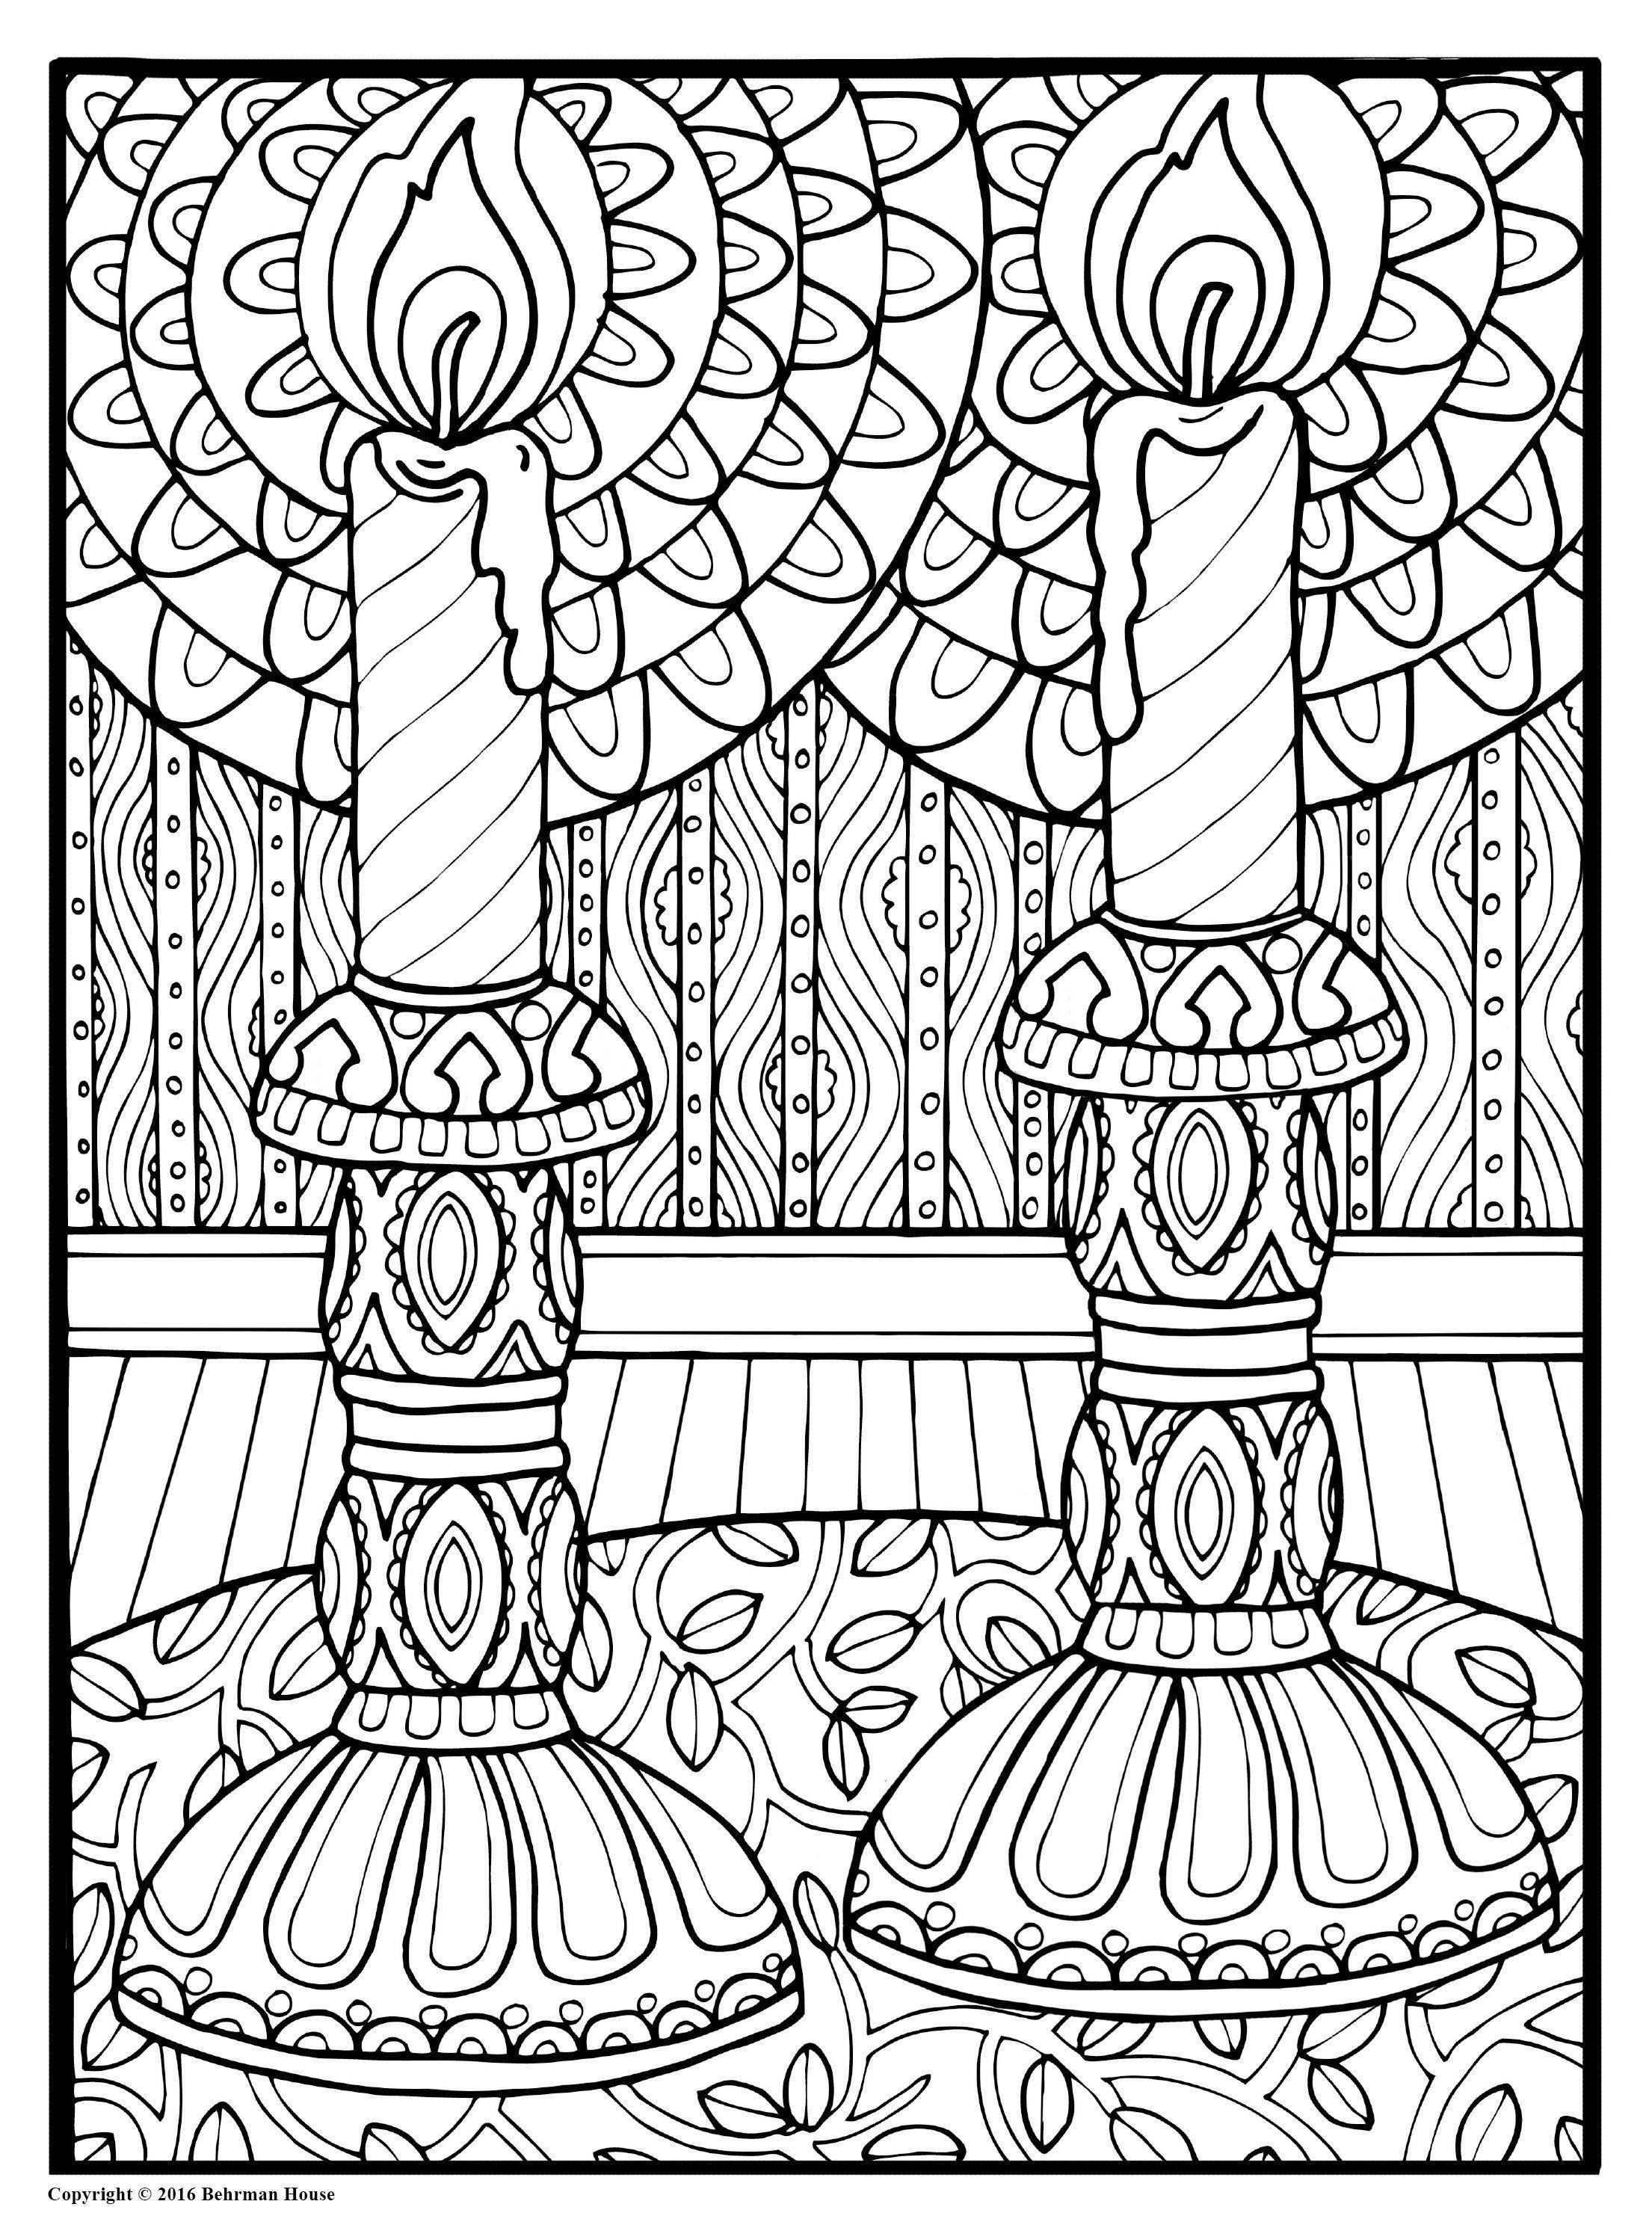 Rosh Hashanah Coloring Pages Best Of Jewish Coloring Pages